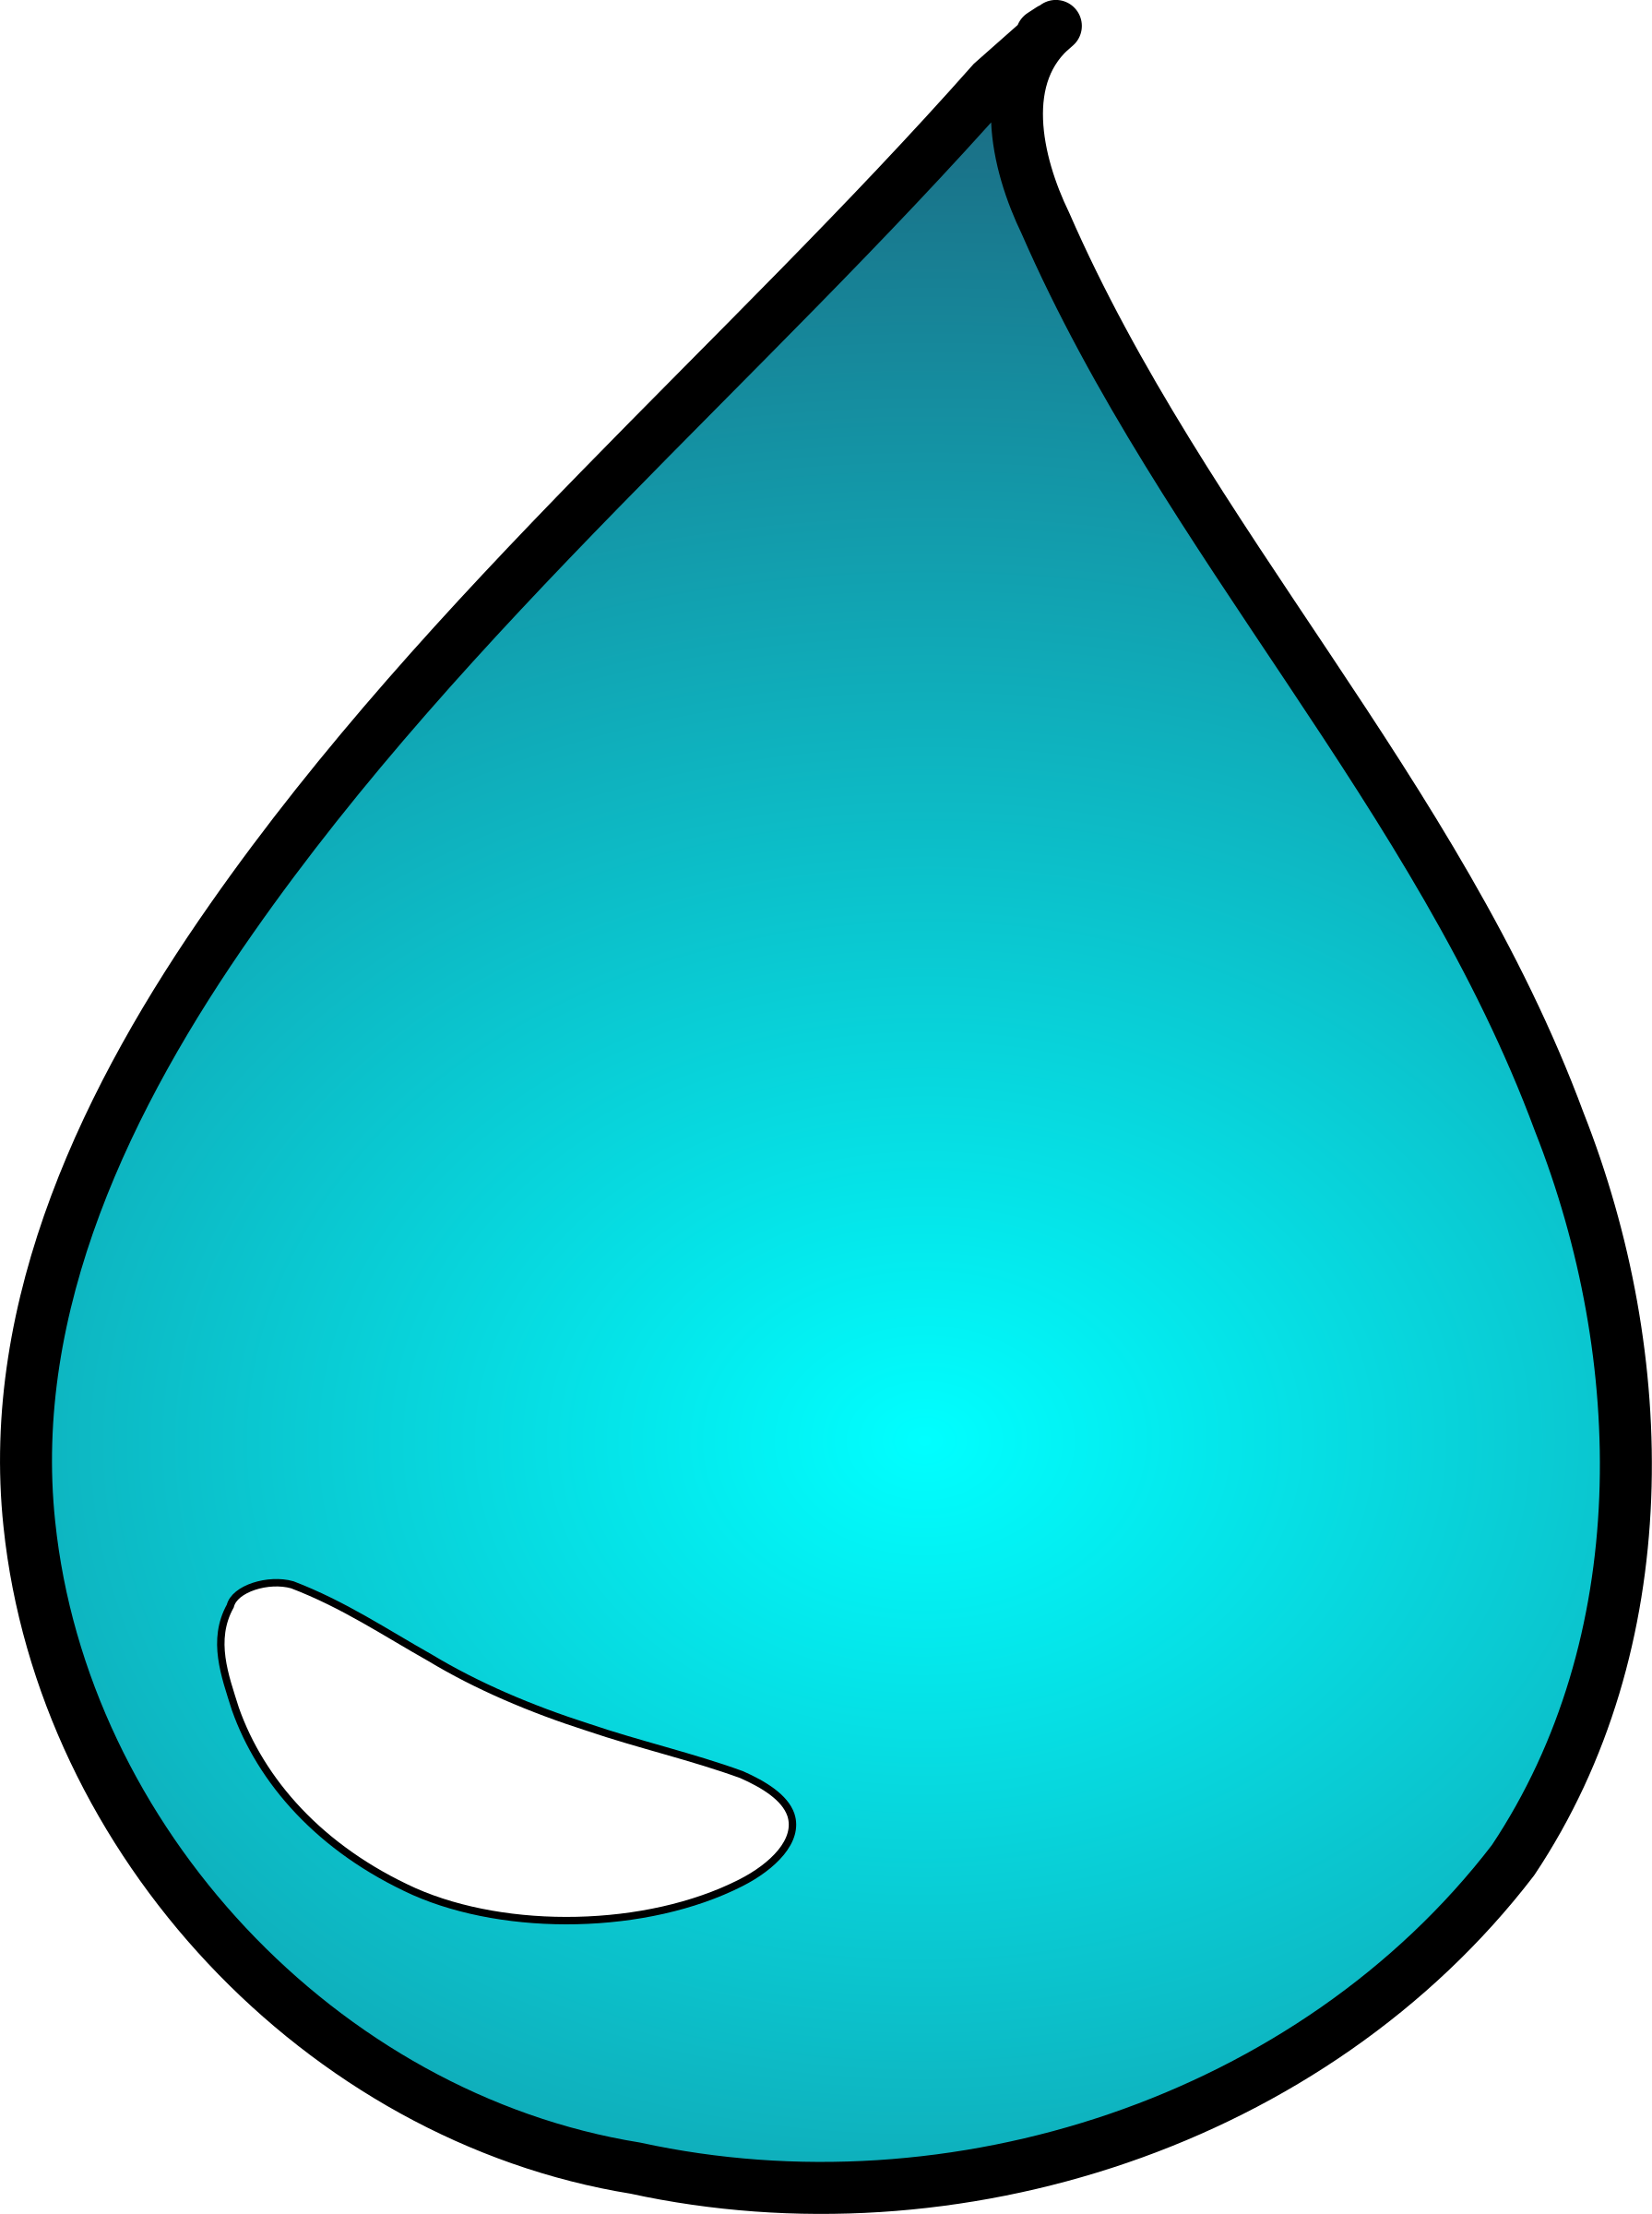 drops clipart water droplet